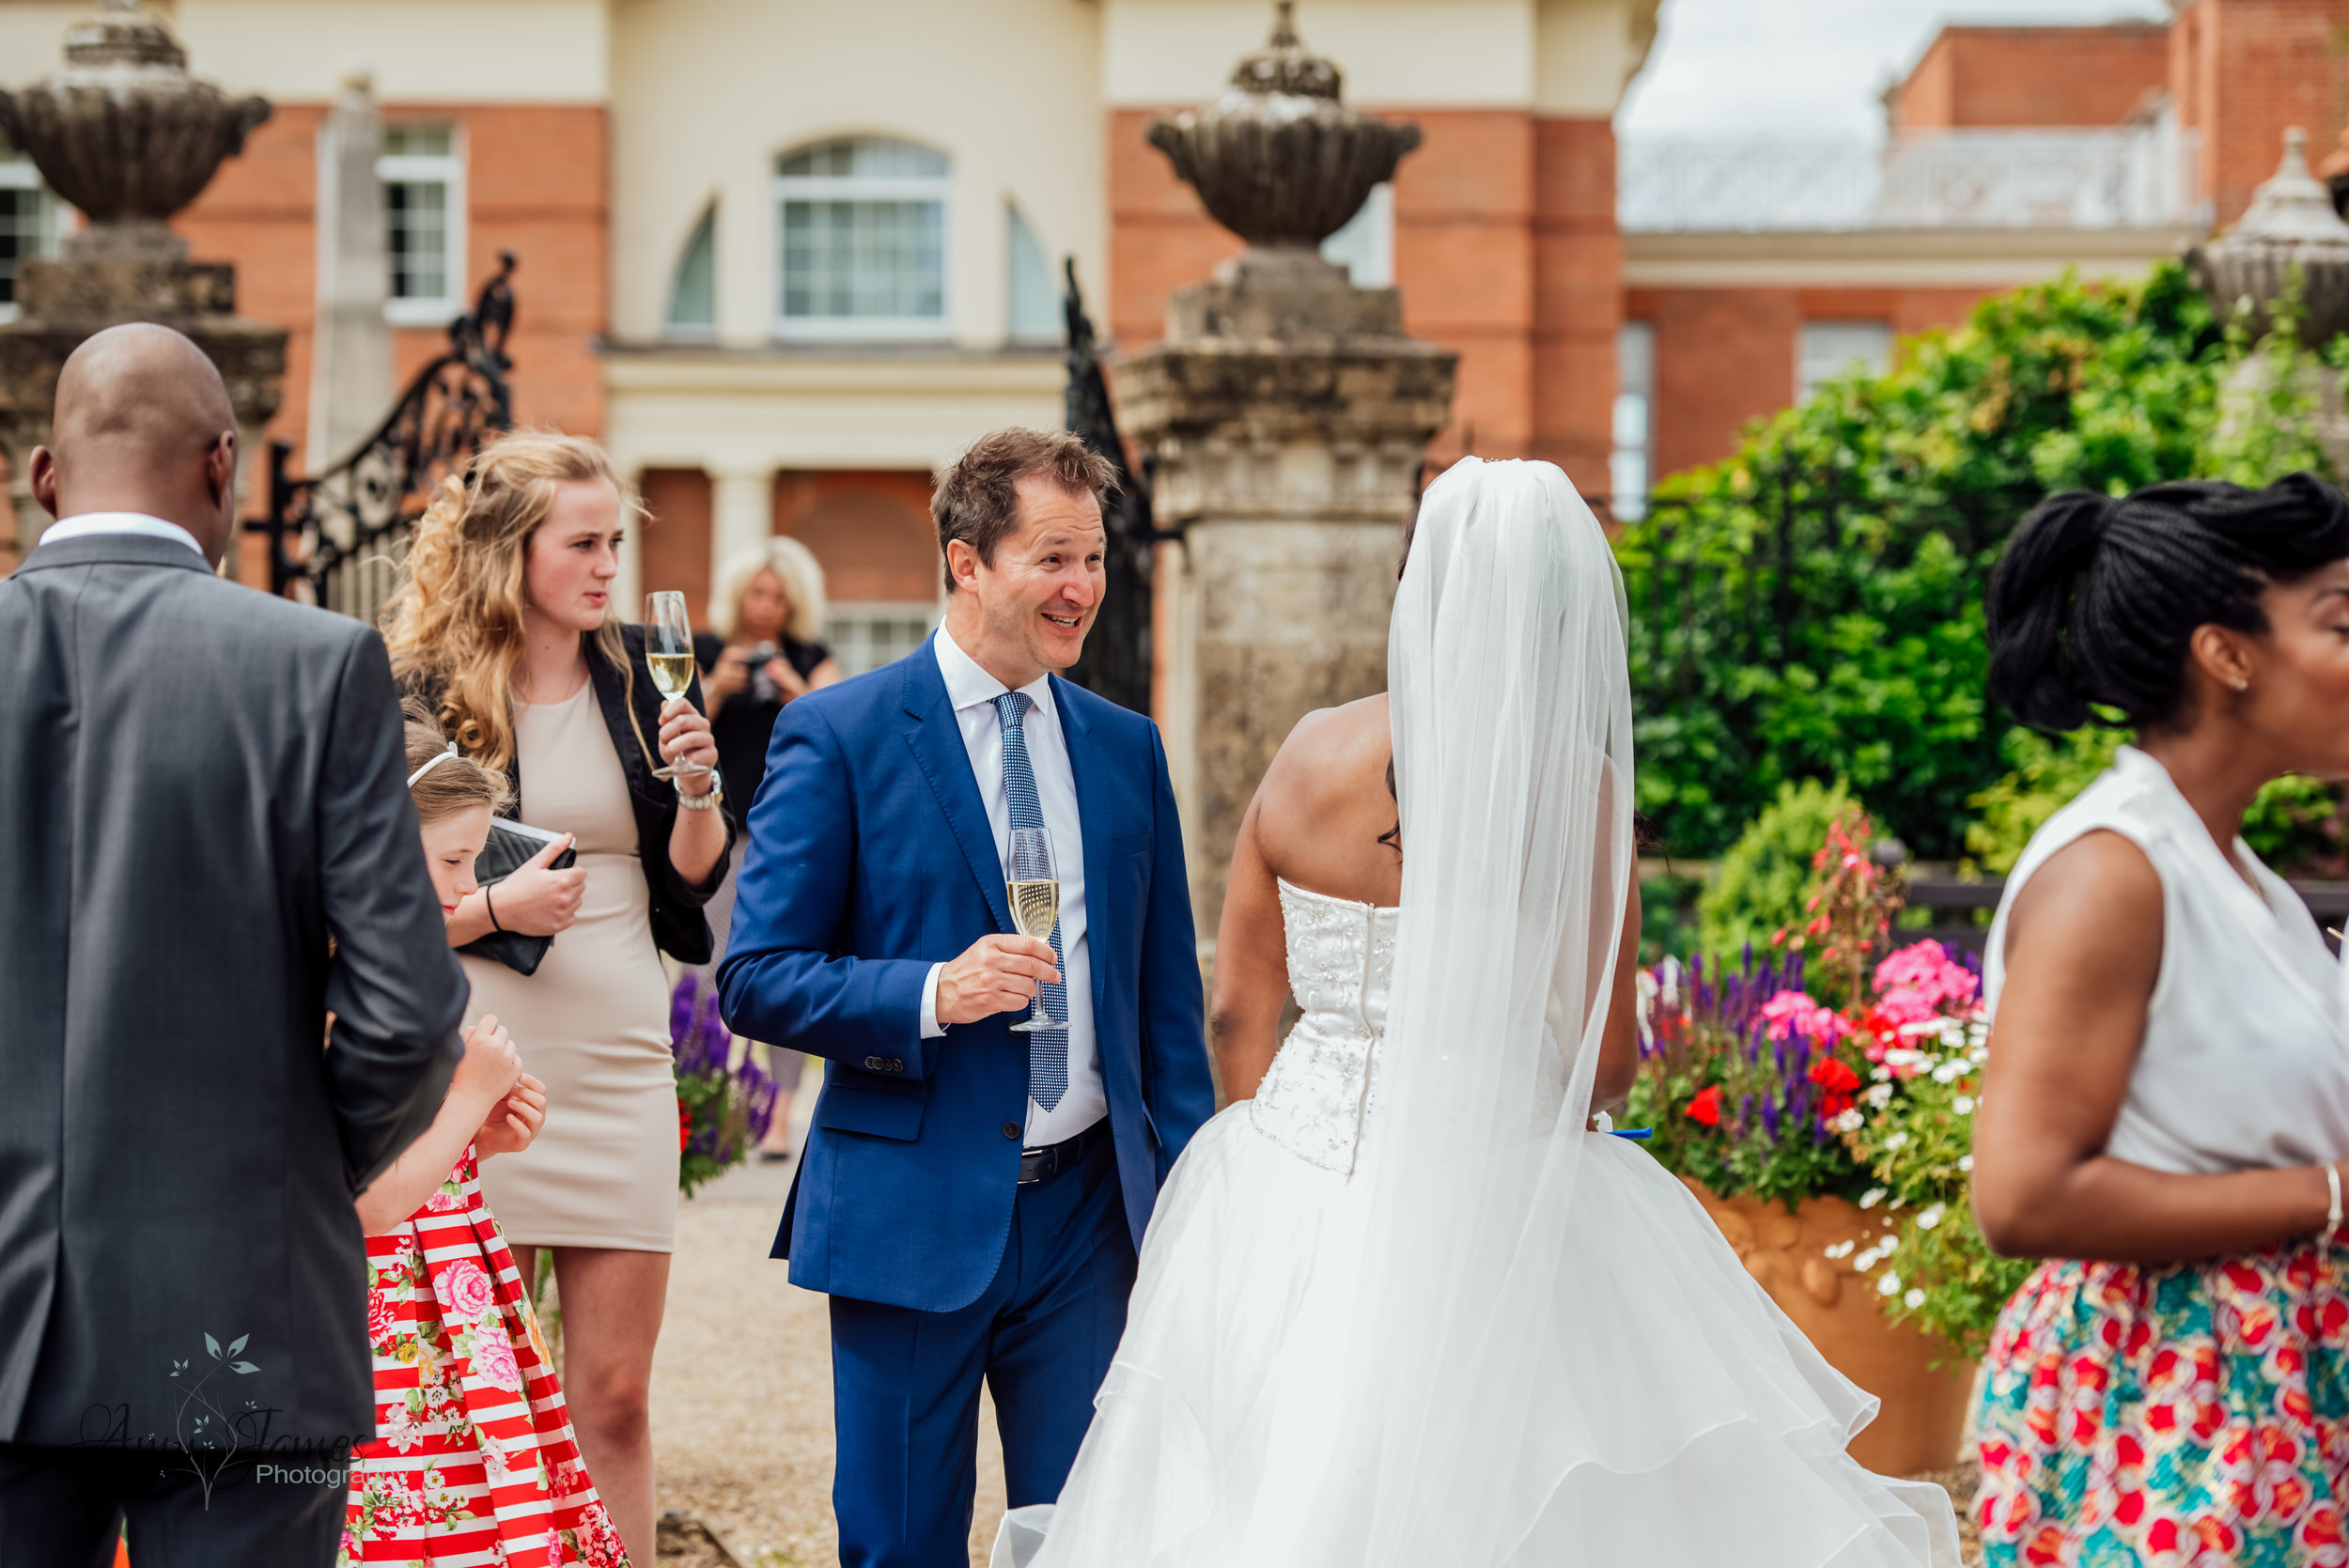 Amy James photography at Four Seasons Hotel Hampshire - Documentary wedding photographer for Hampshire and Surrey  -